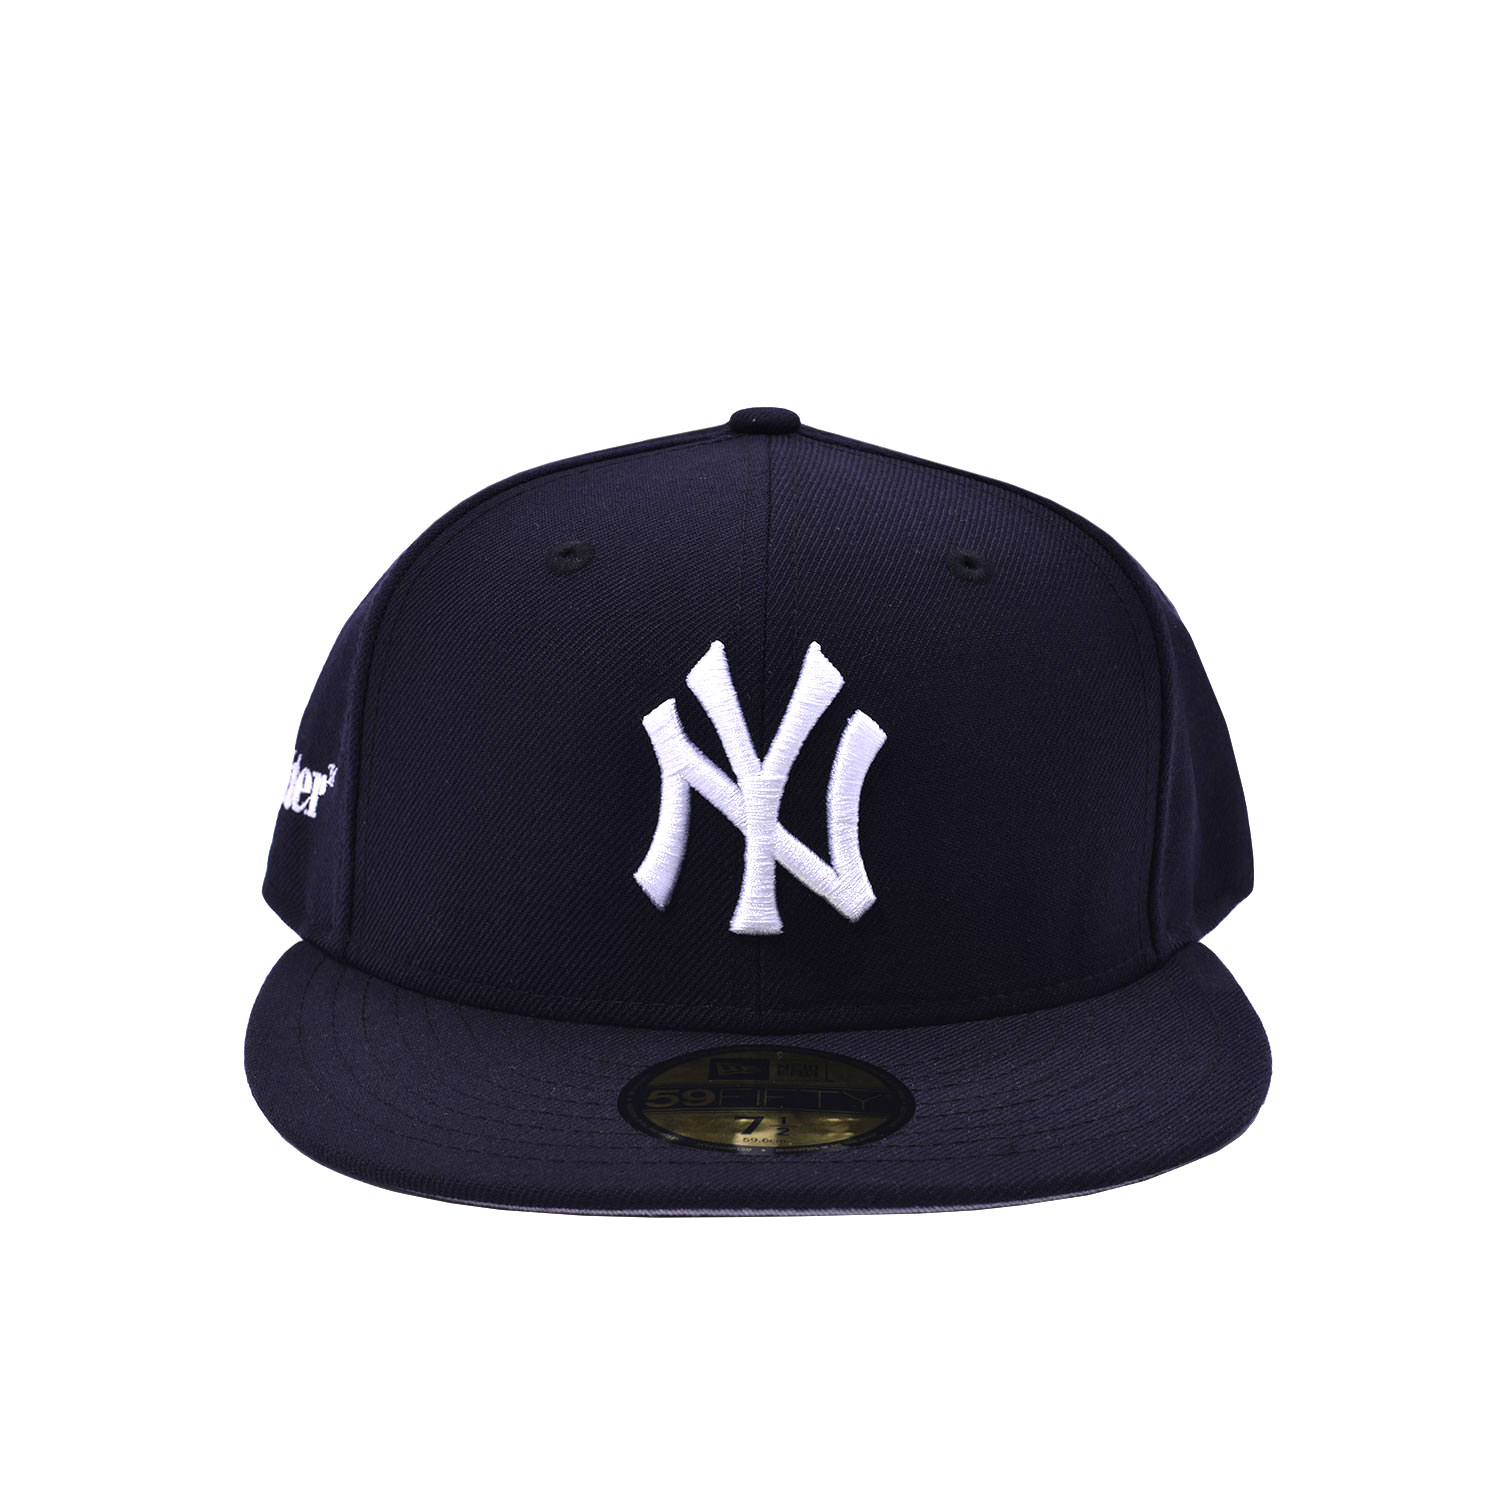 Better New Era New York Yankees Cap Firmament Berlin Renaissance